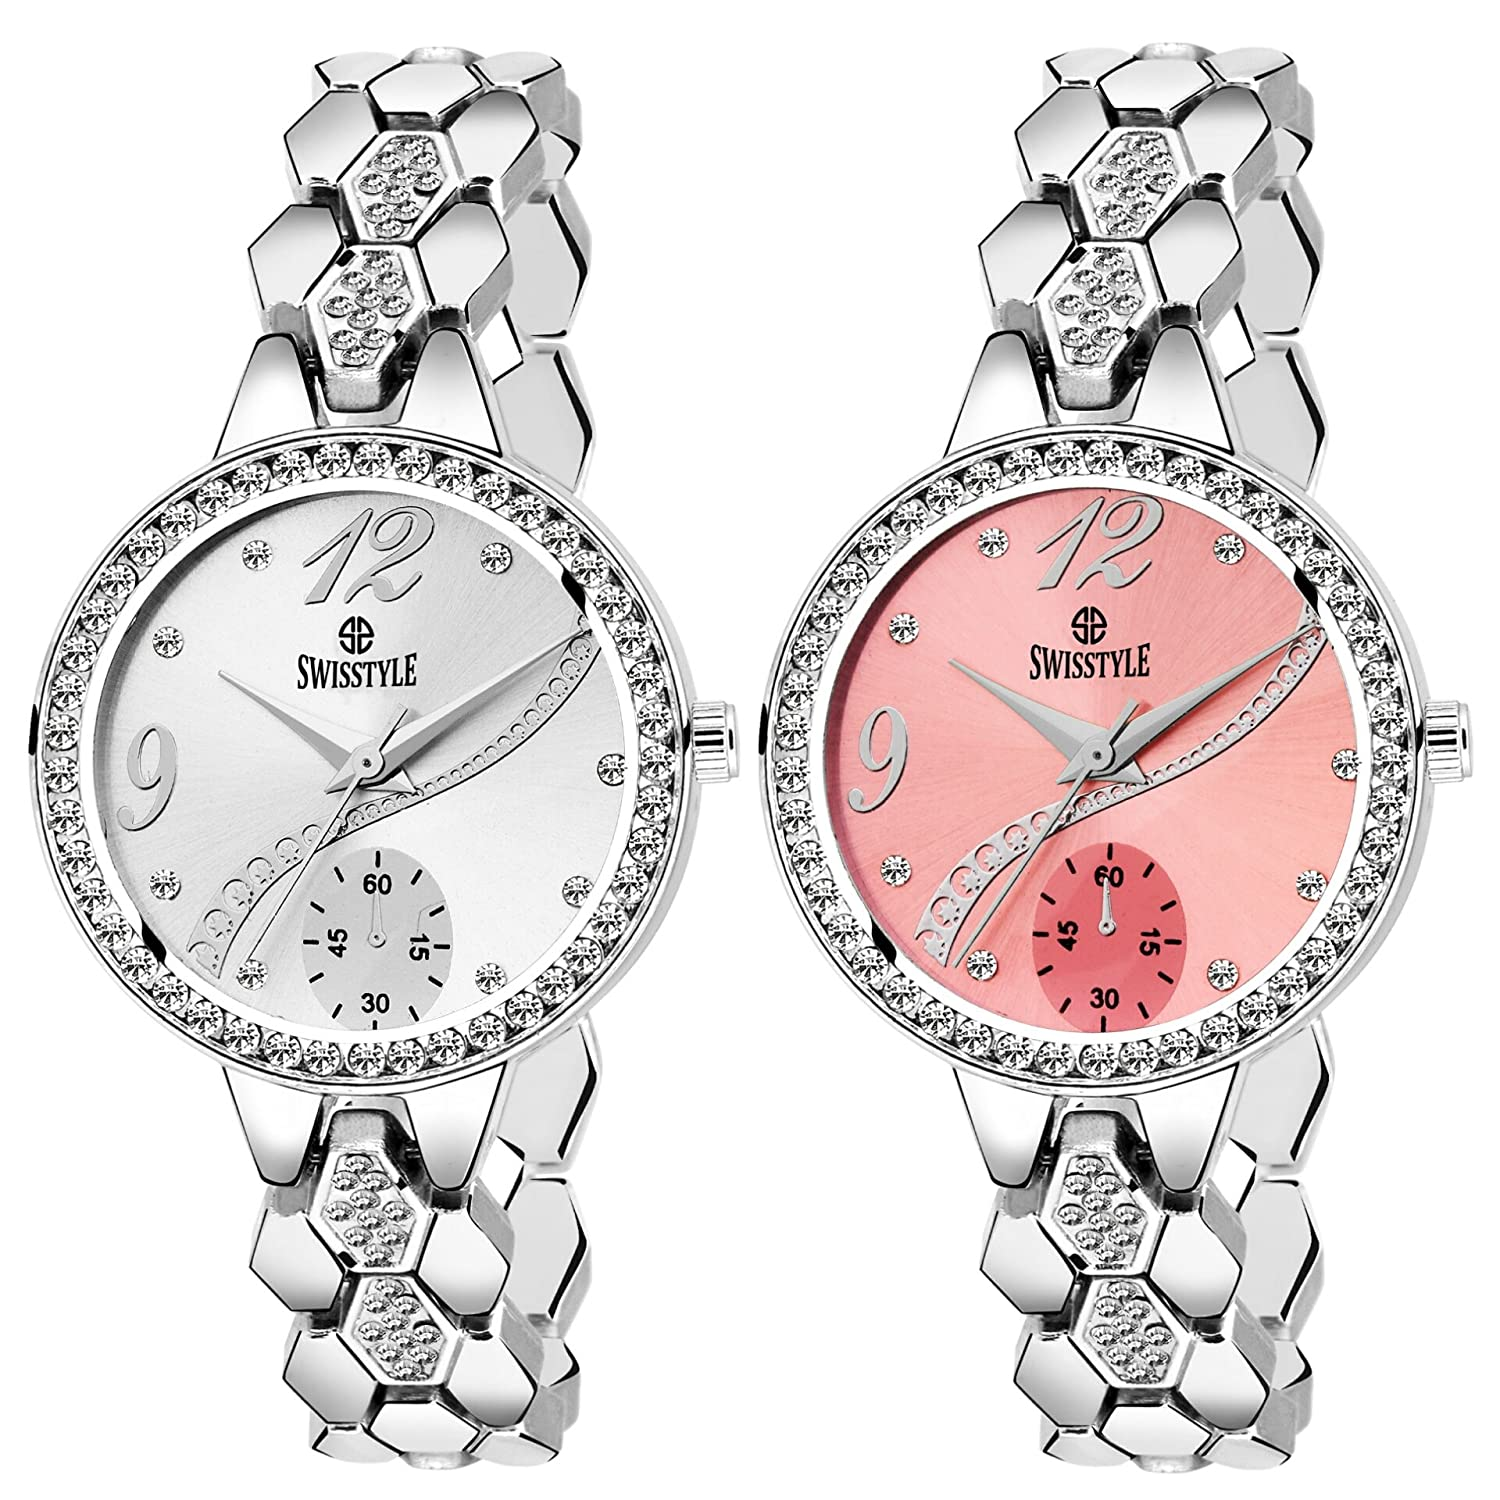 BRITTON Swisstyle Analogue Silver and Pink Dial Combo Watch for Women